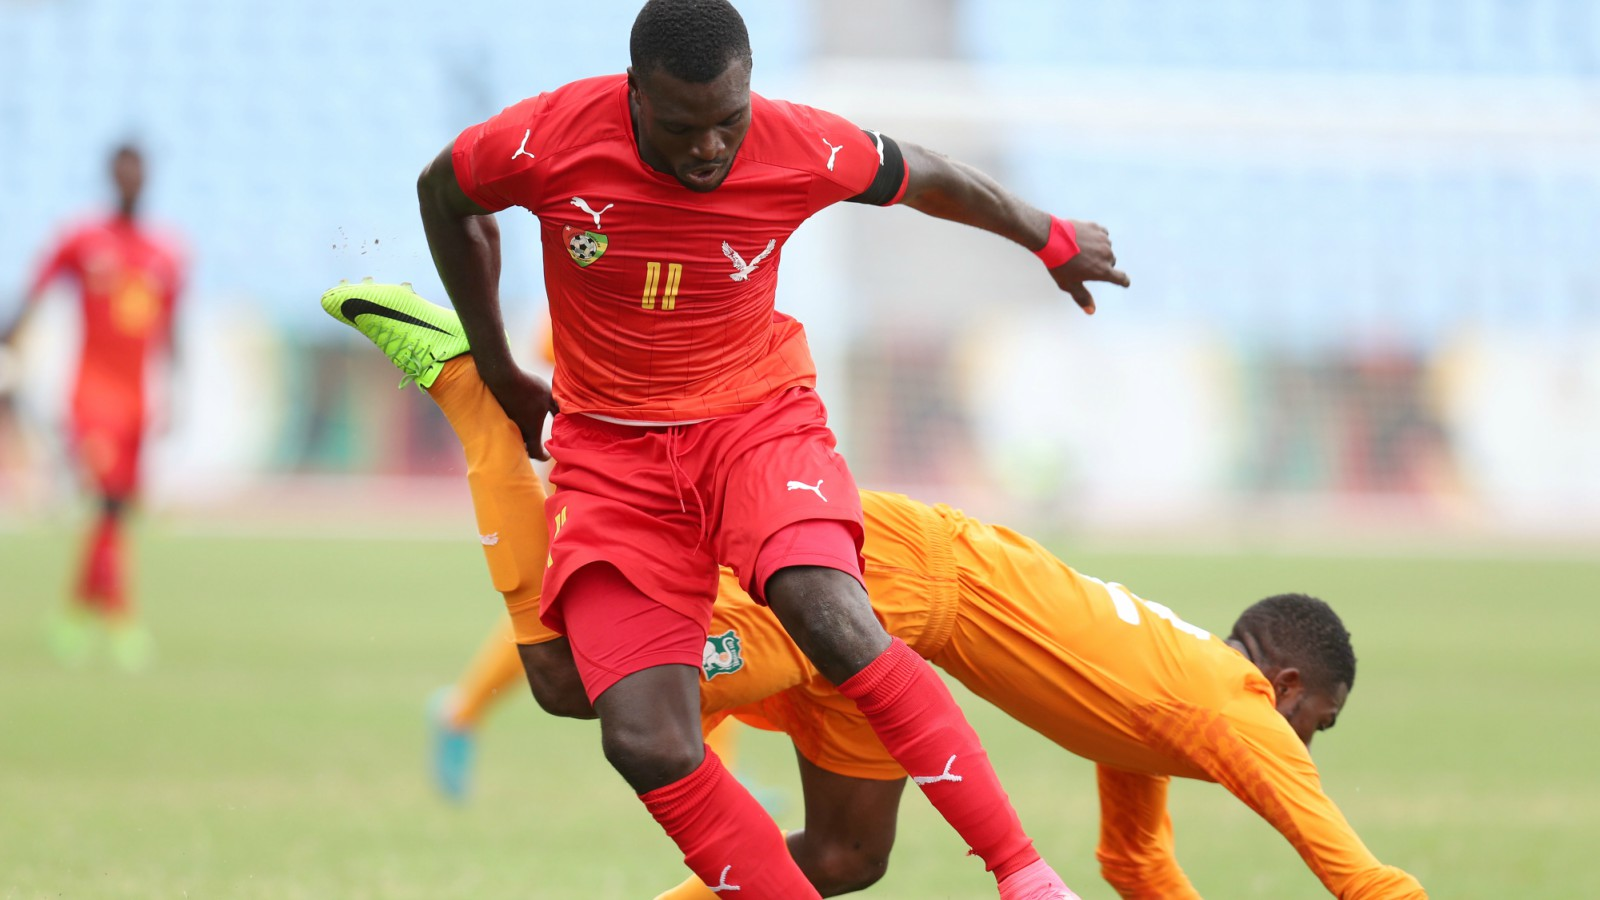 WAFU Cup exit is painful, says Togo skipper kouloun